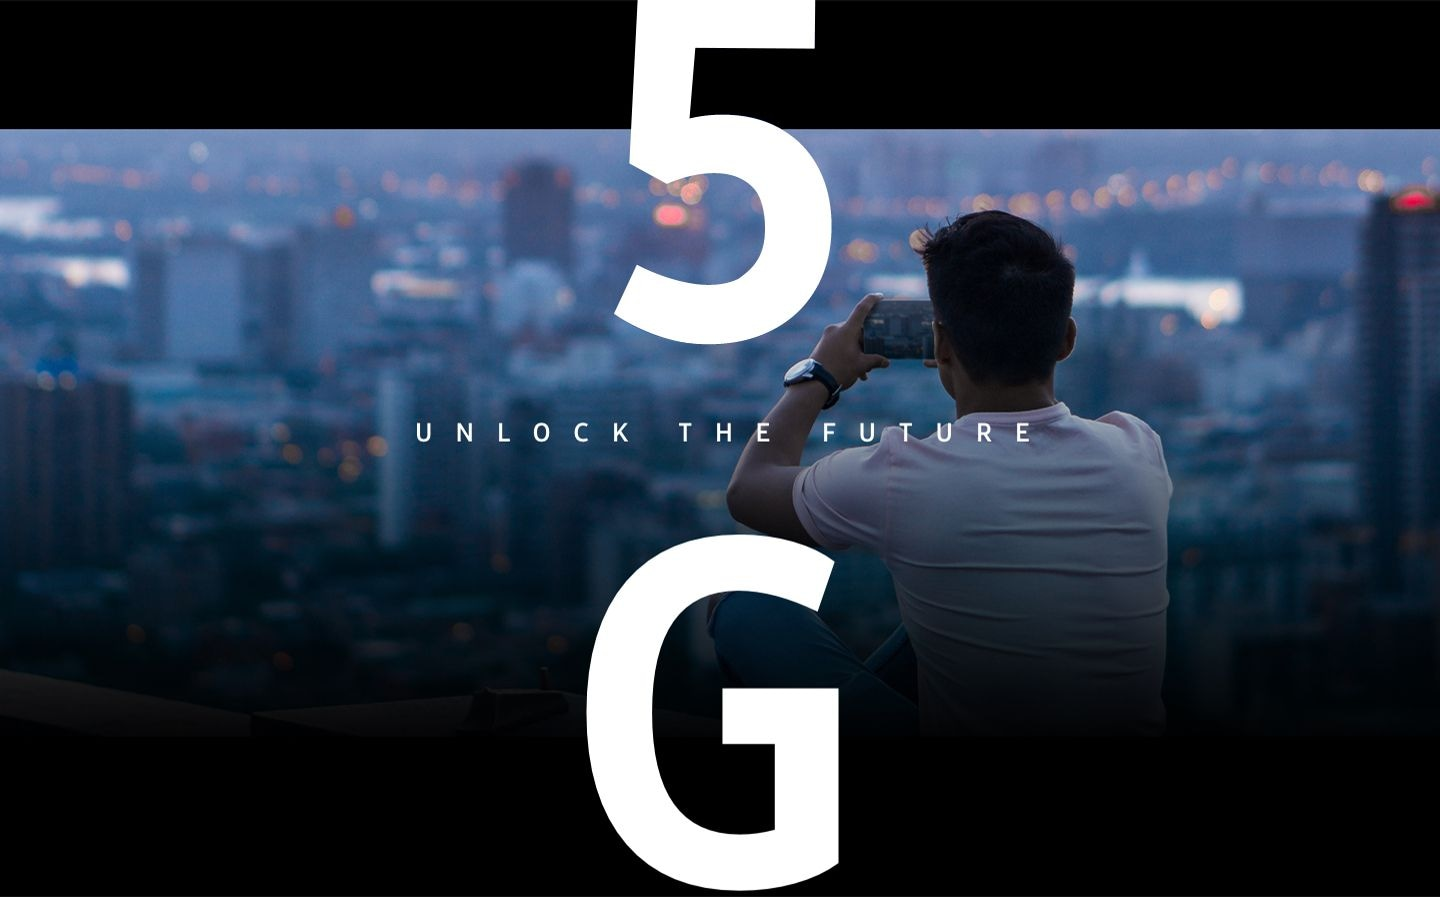 Man taking a photo of a cityscape with his Galaxy 5G smartphone. Overlaid on the image is text that says 5G unlock the future